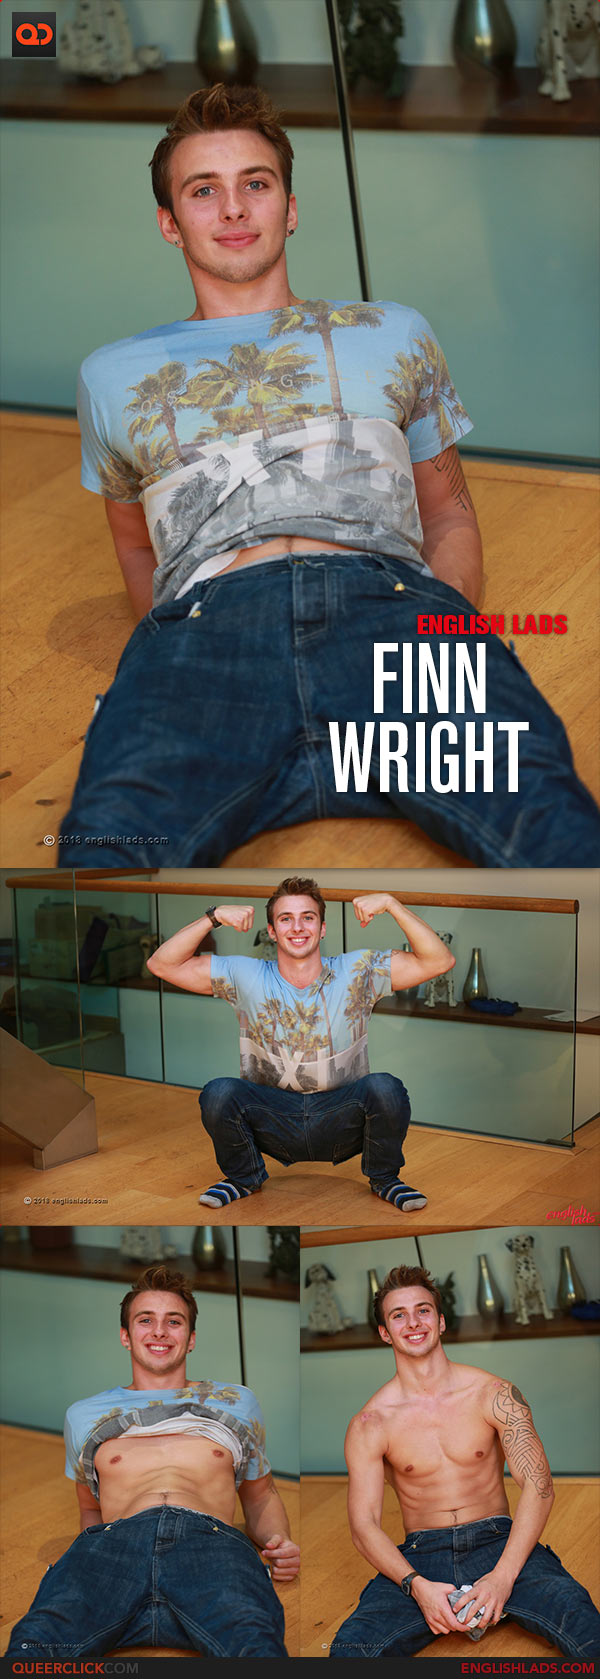 English Lads: Finn Wright